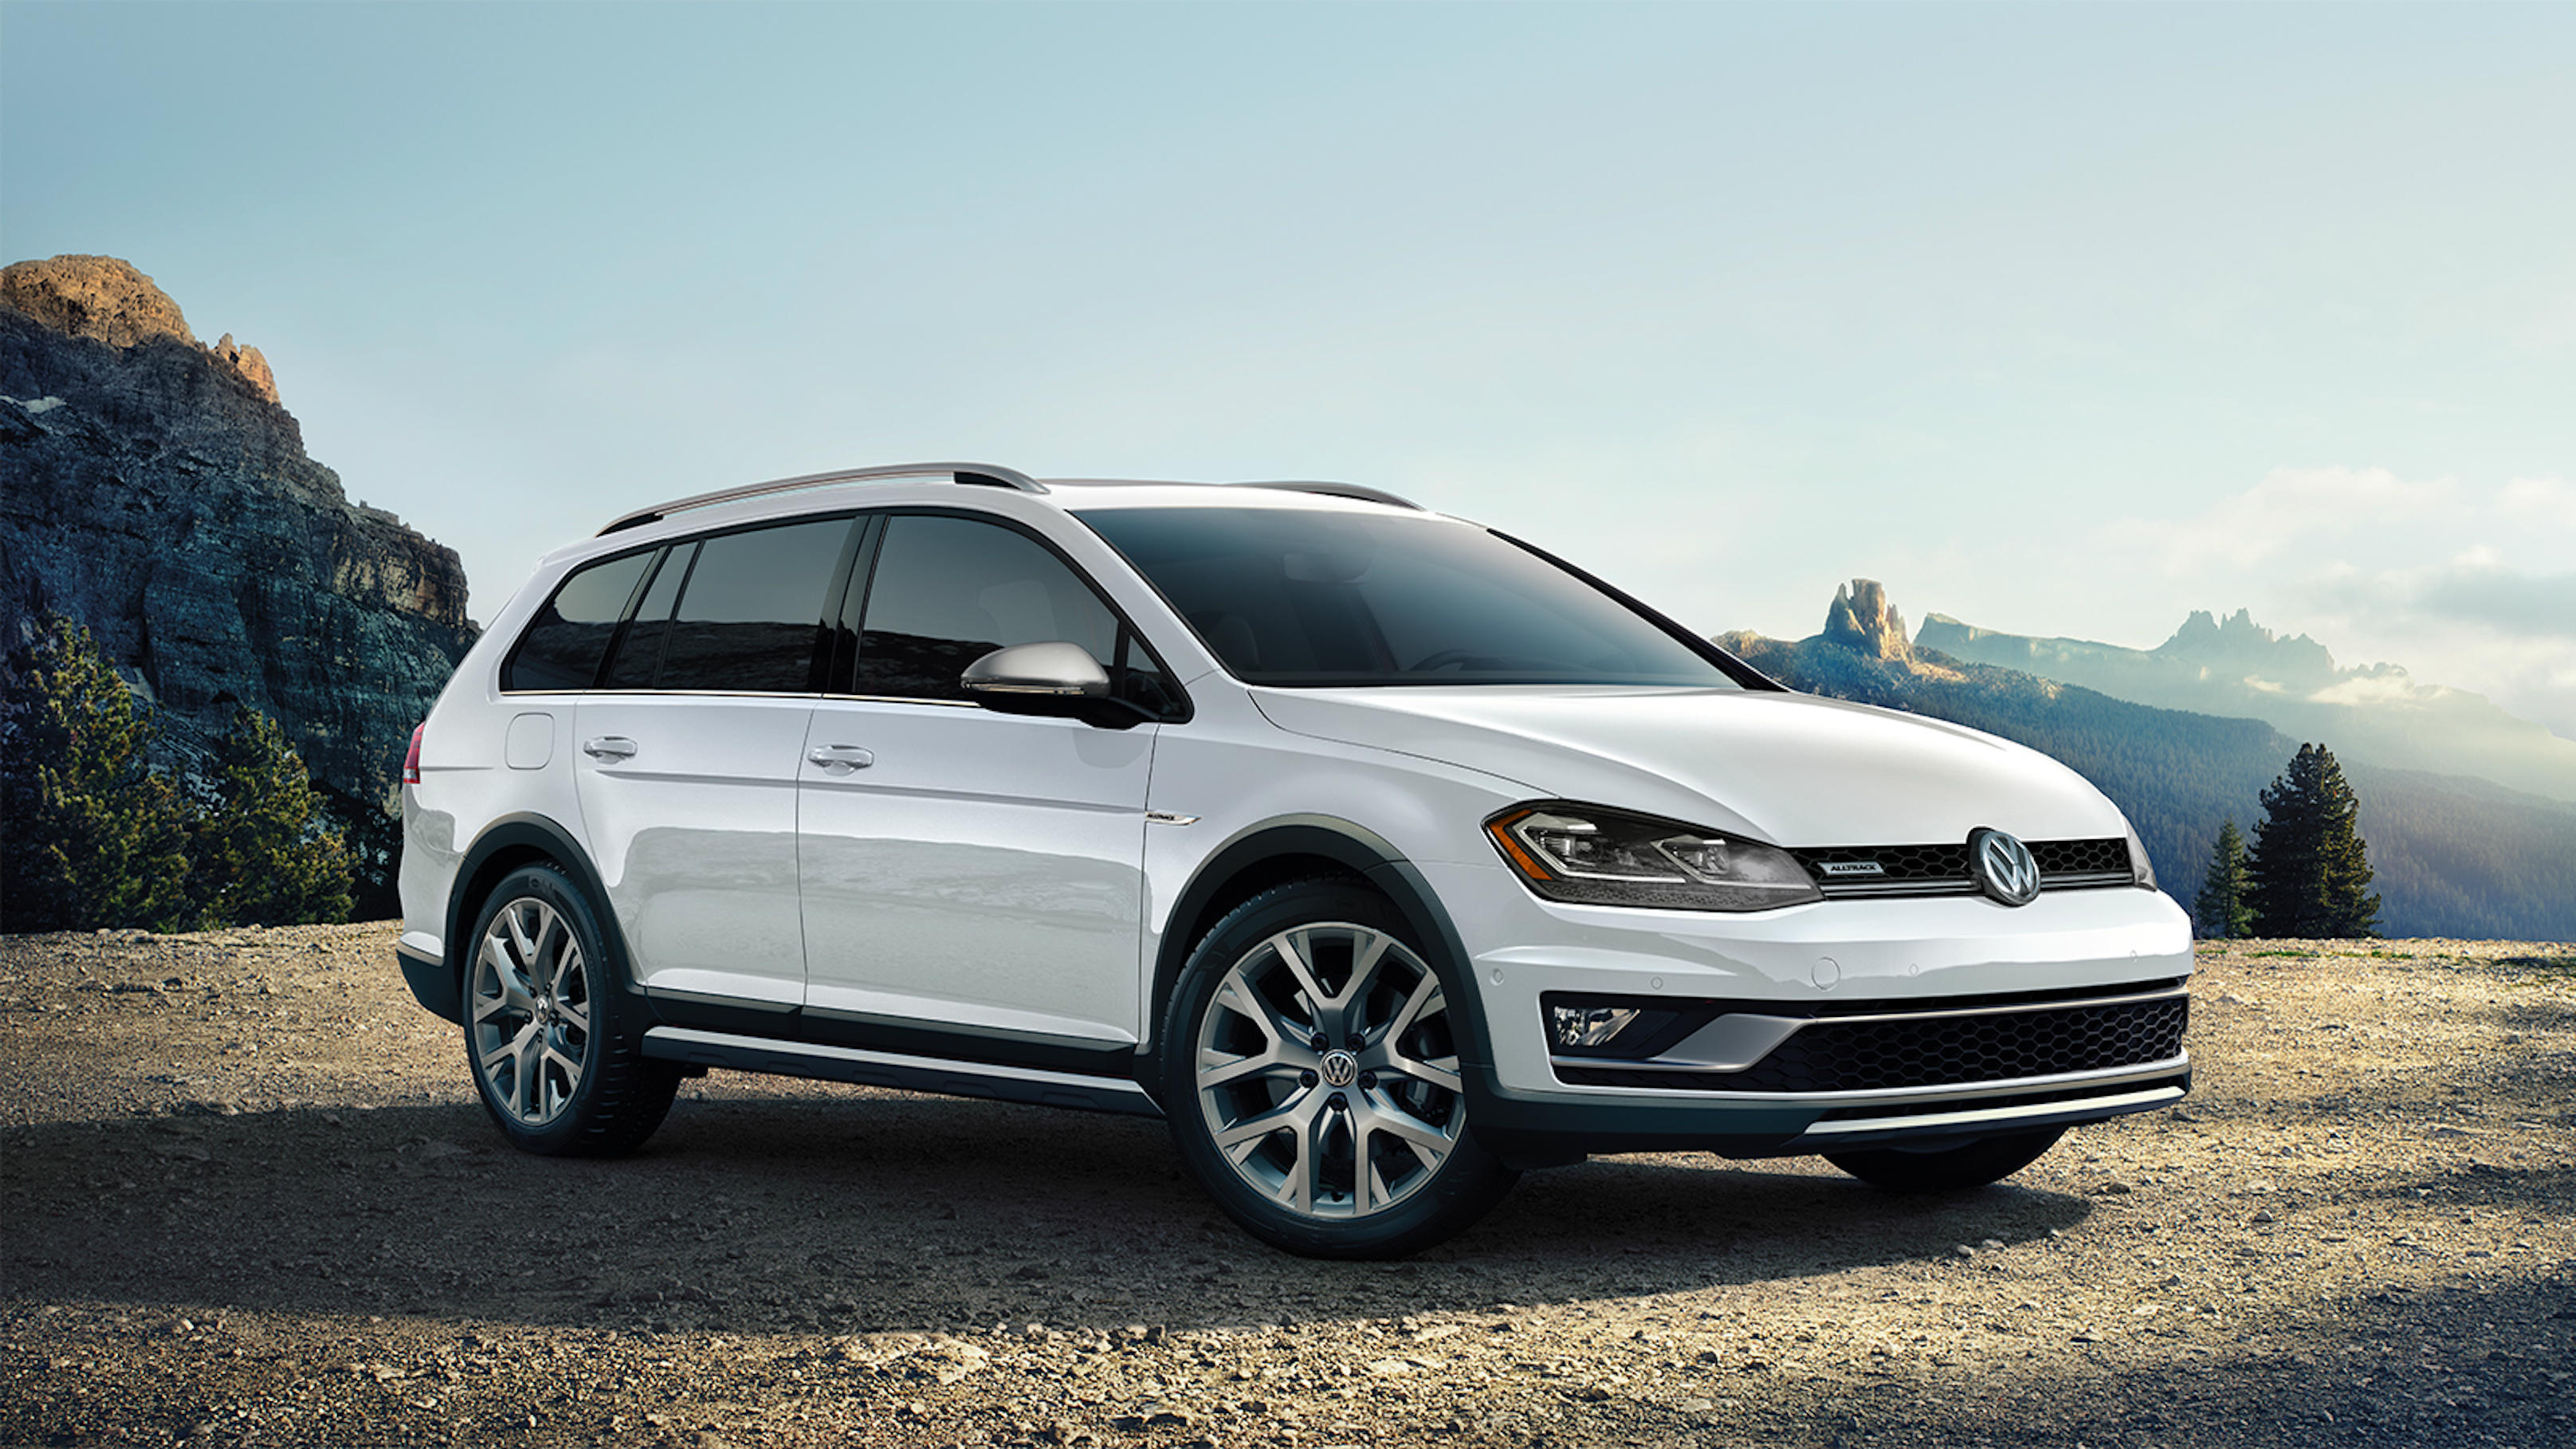 Golf Alltrack and Sportwagen